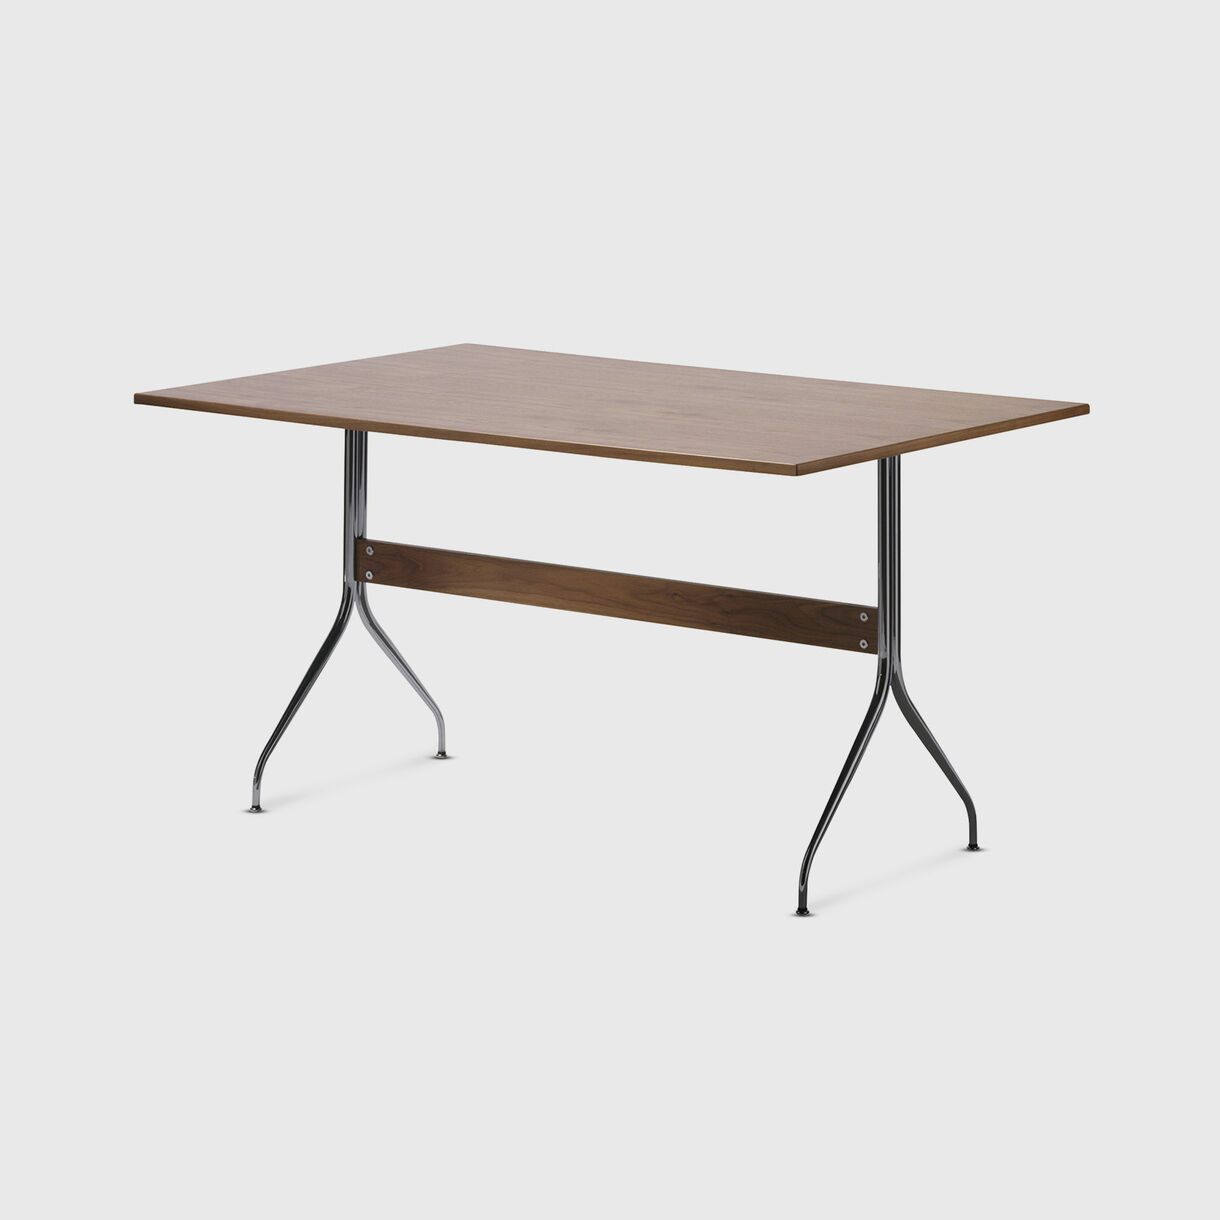 Nelson Swag Leg Work Table, Walnut Top